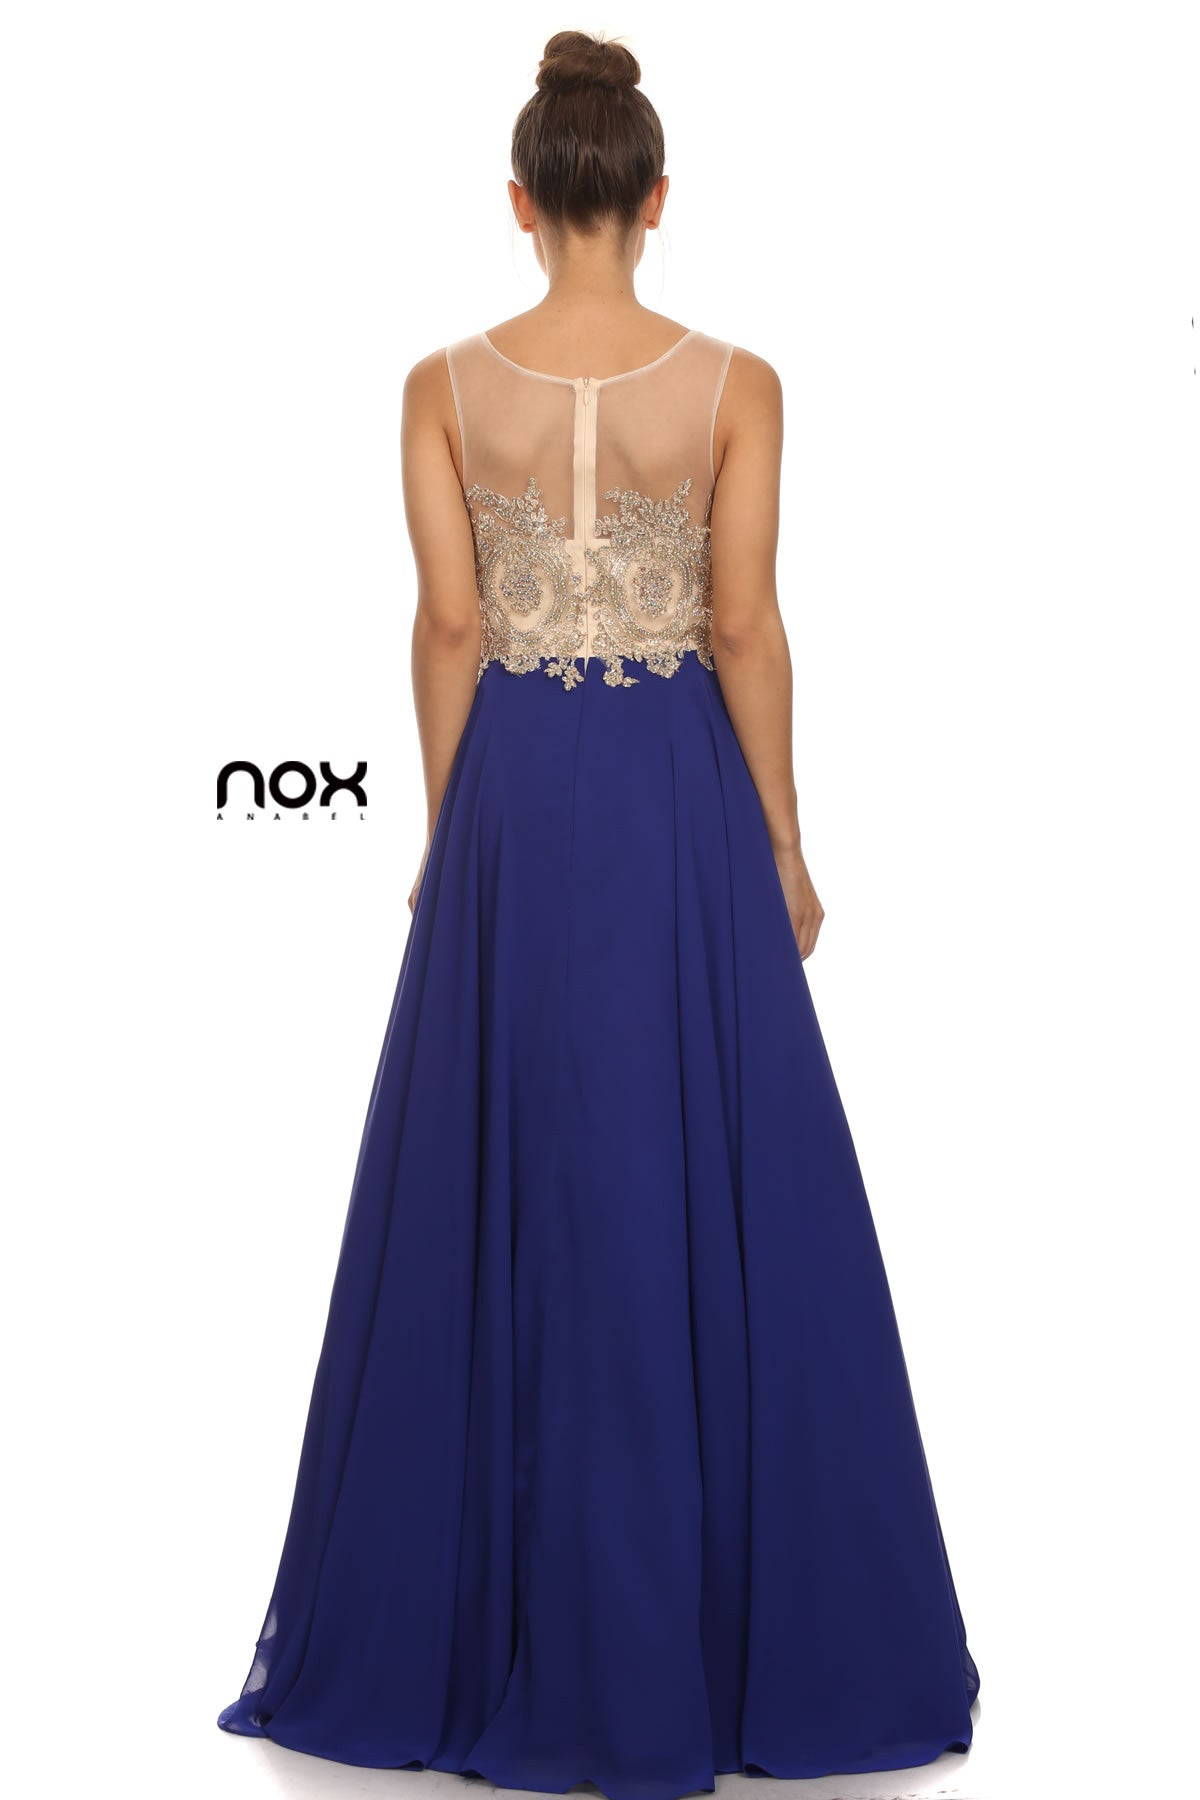 Navy Blue Appliqued Bodice A-Line Chiffon Formal Dress Sleeveless Back View